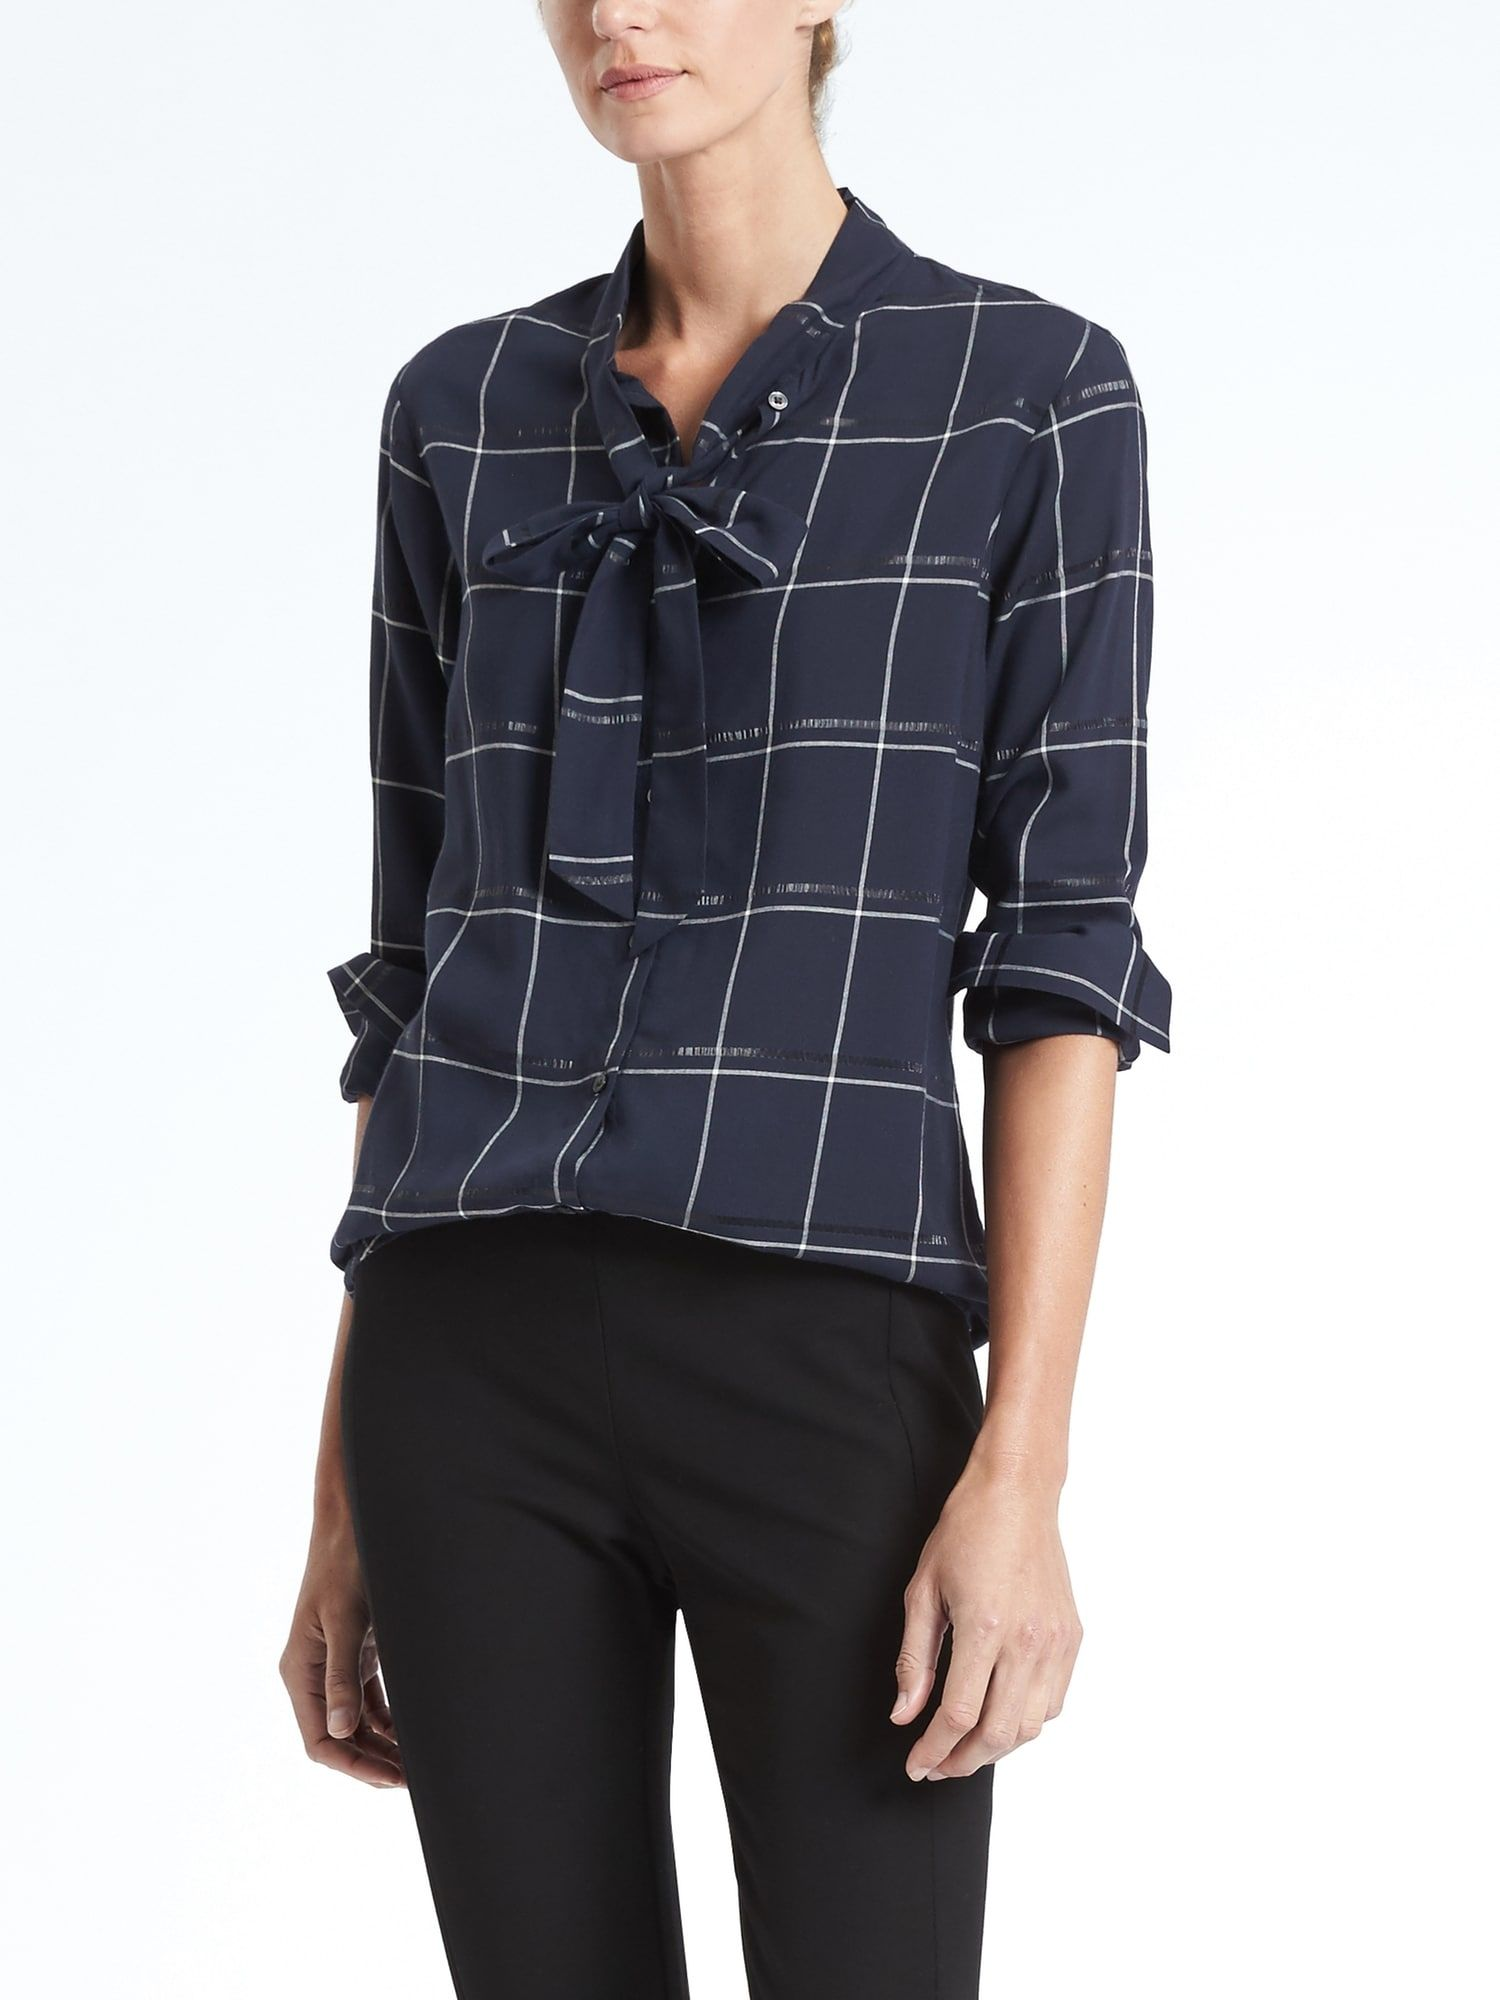 f7283d57fac Dillon-Fit Plaid Tie-Neck, $78, BR | Style: Haircuts, Outfits ...